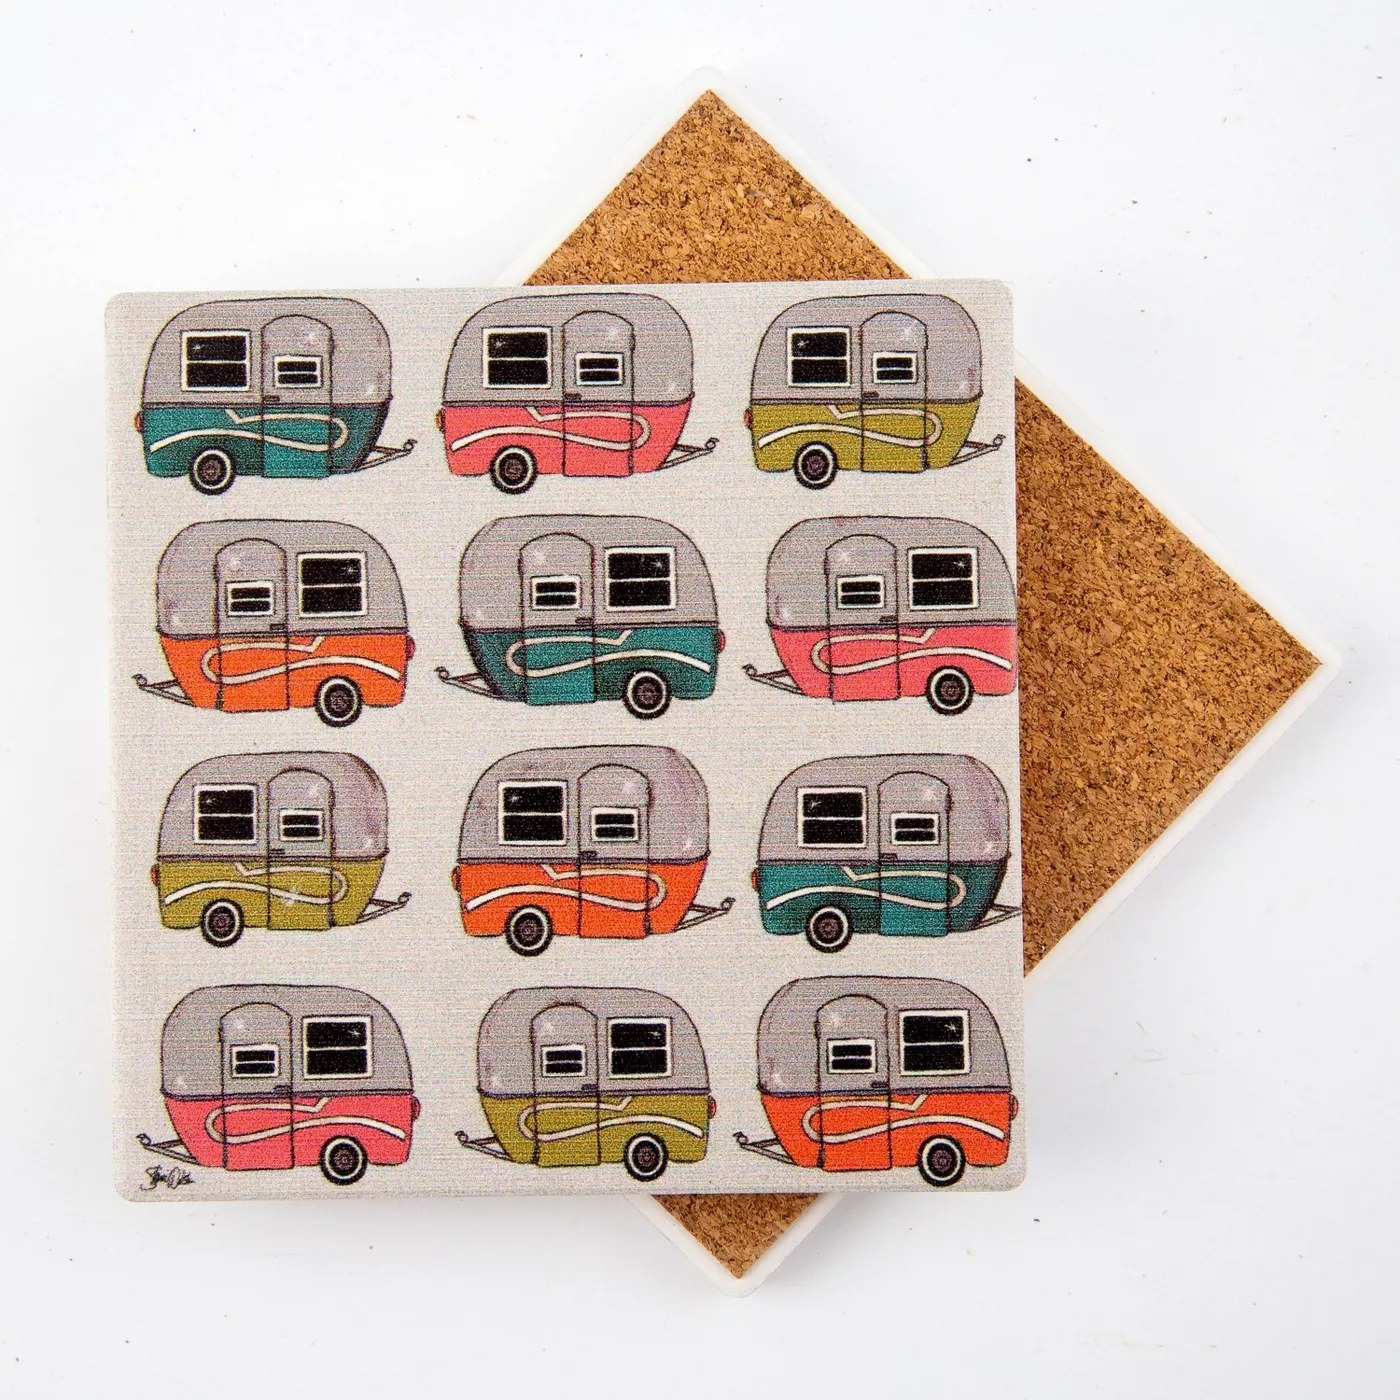 """The coaster placed face-up to better display its """"camper"""" prints"""